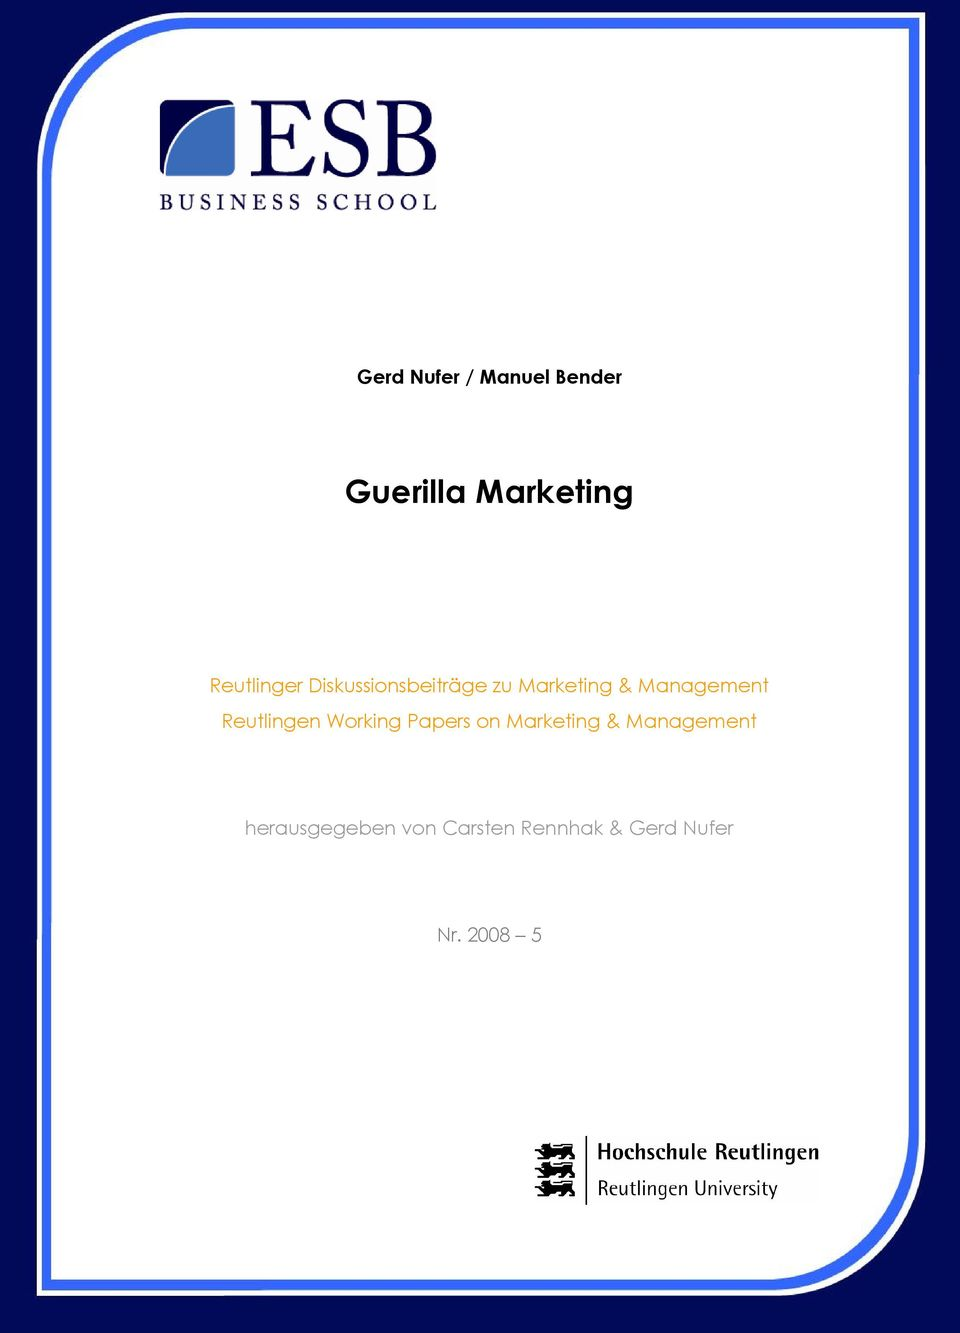 Management Reutlingen Working Papers on Marketing &